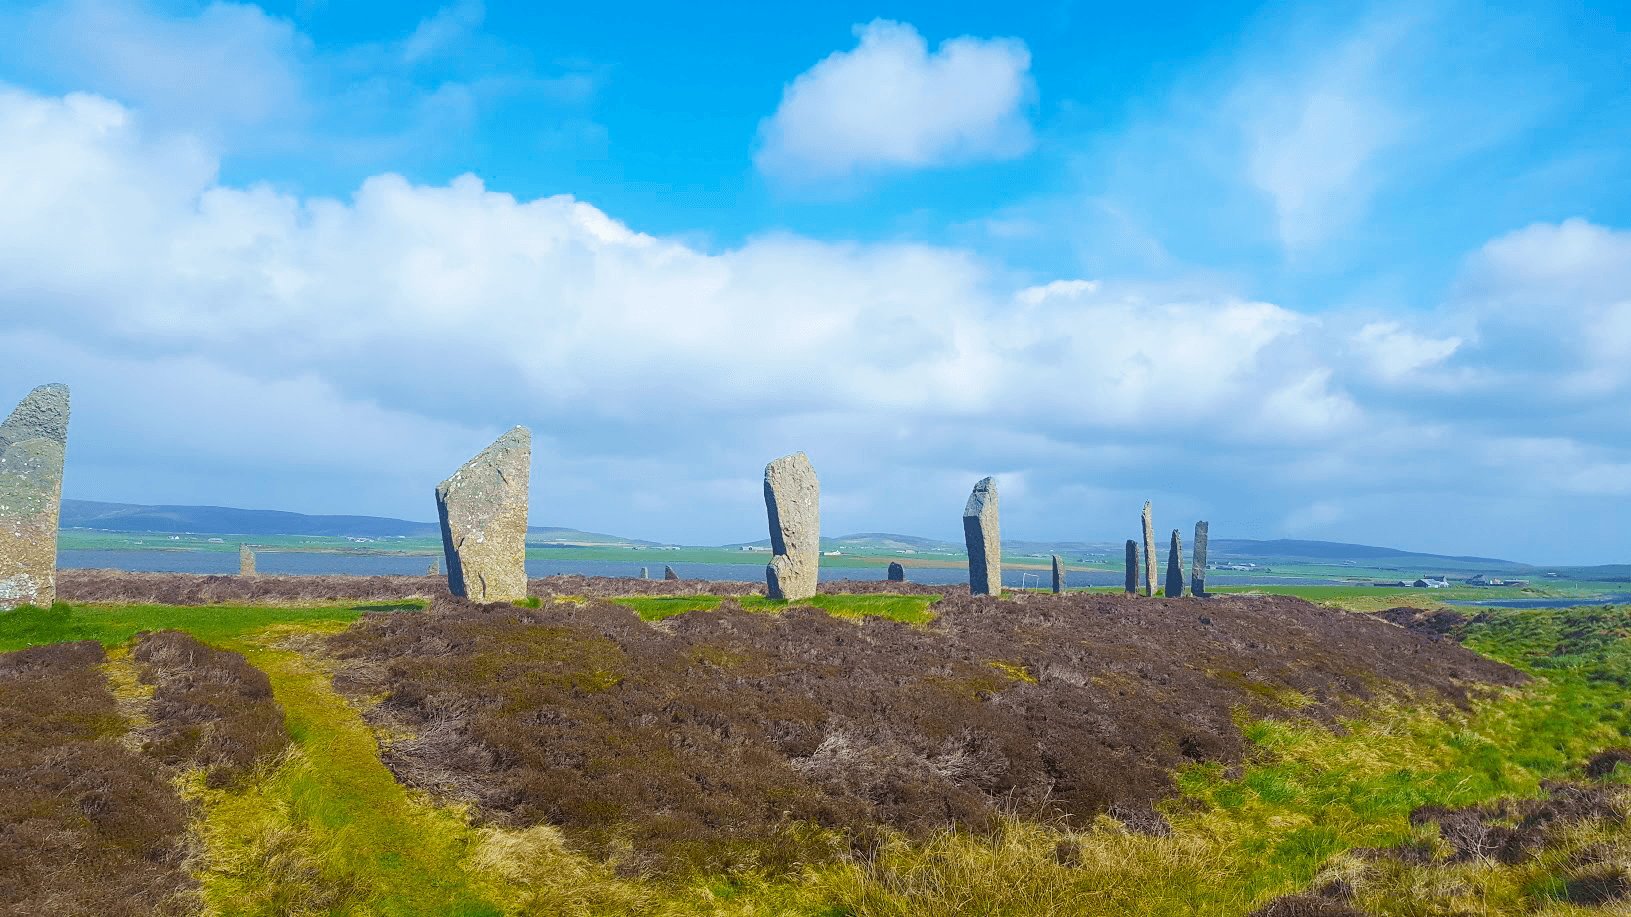 fluffy clouds hang above the standing stones of the ring of brodgar. below heather grows. the loch of stenness can be seen in the distance.